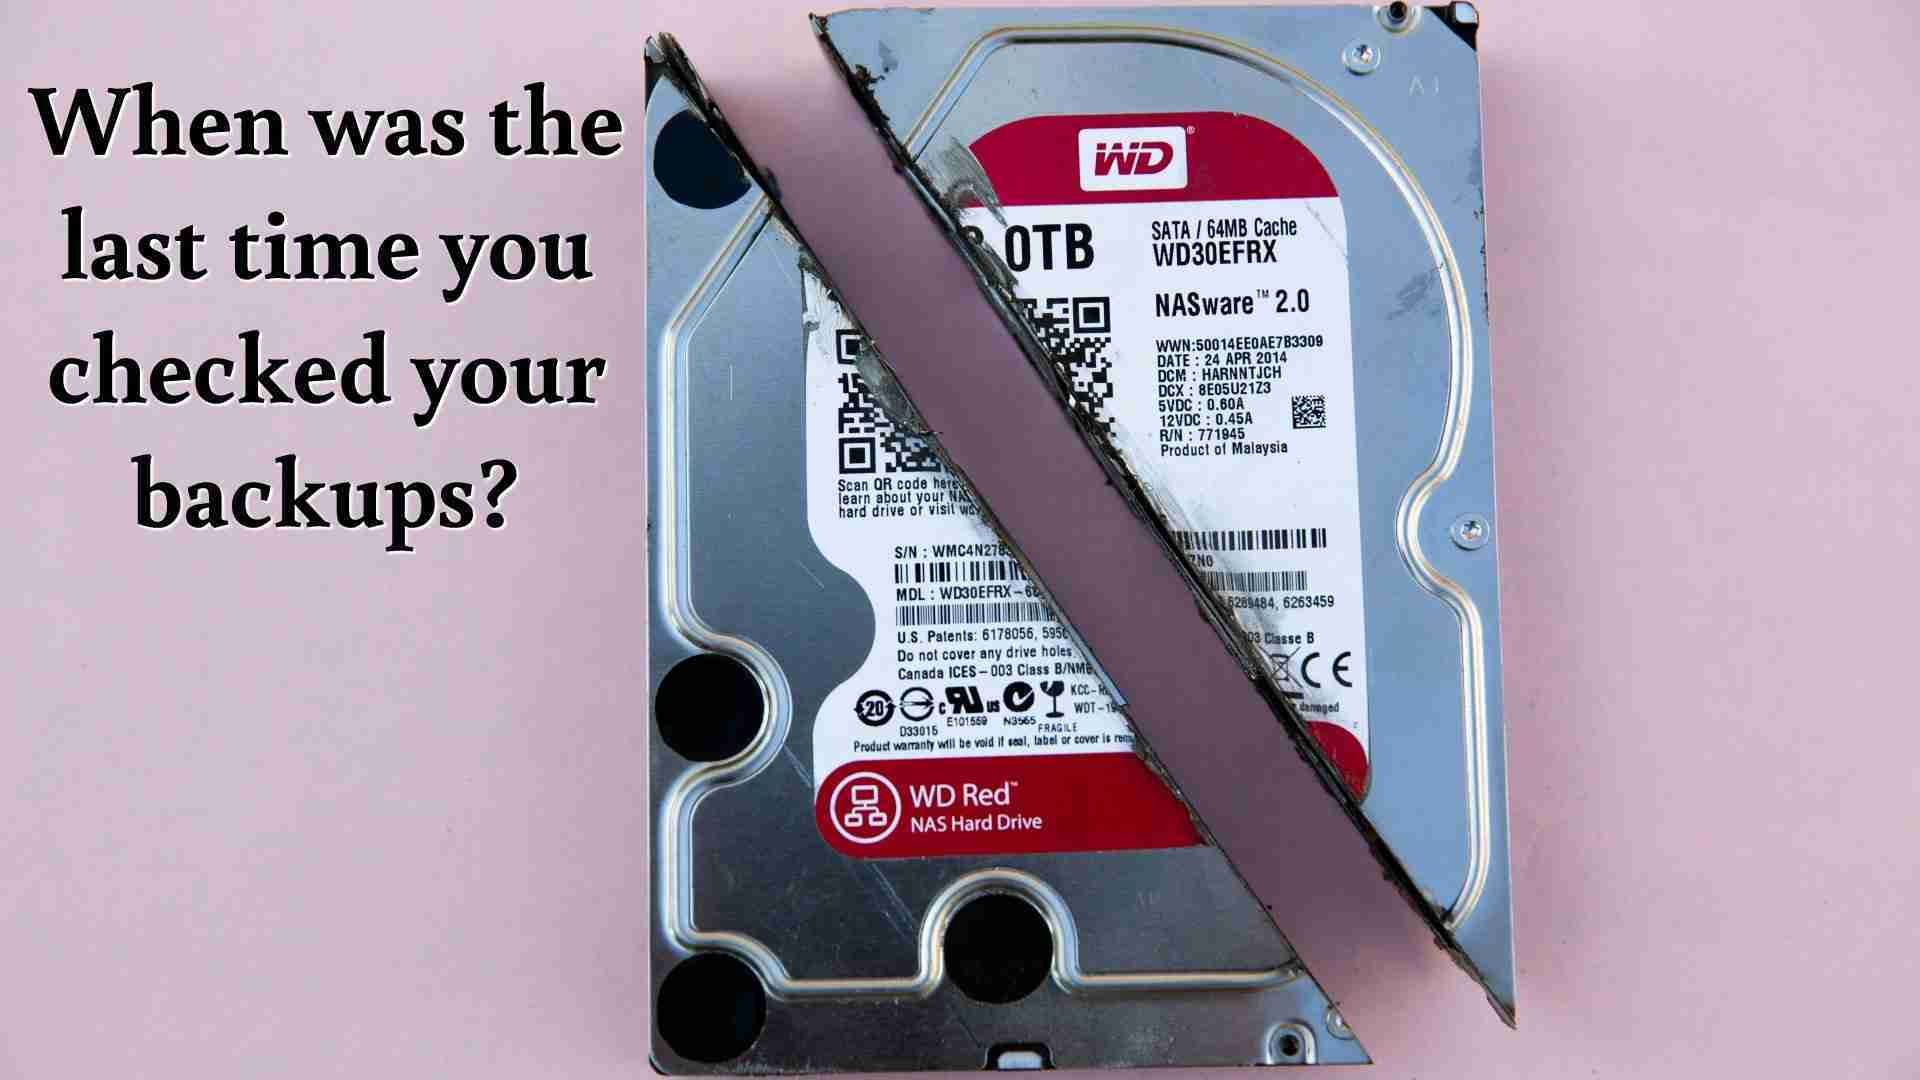 How often do you check your backups?